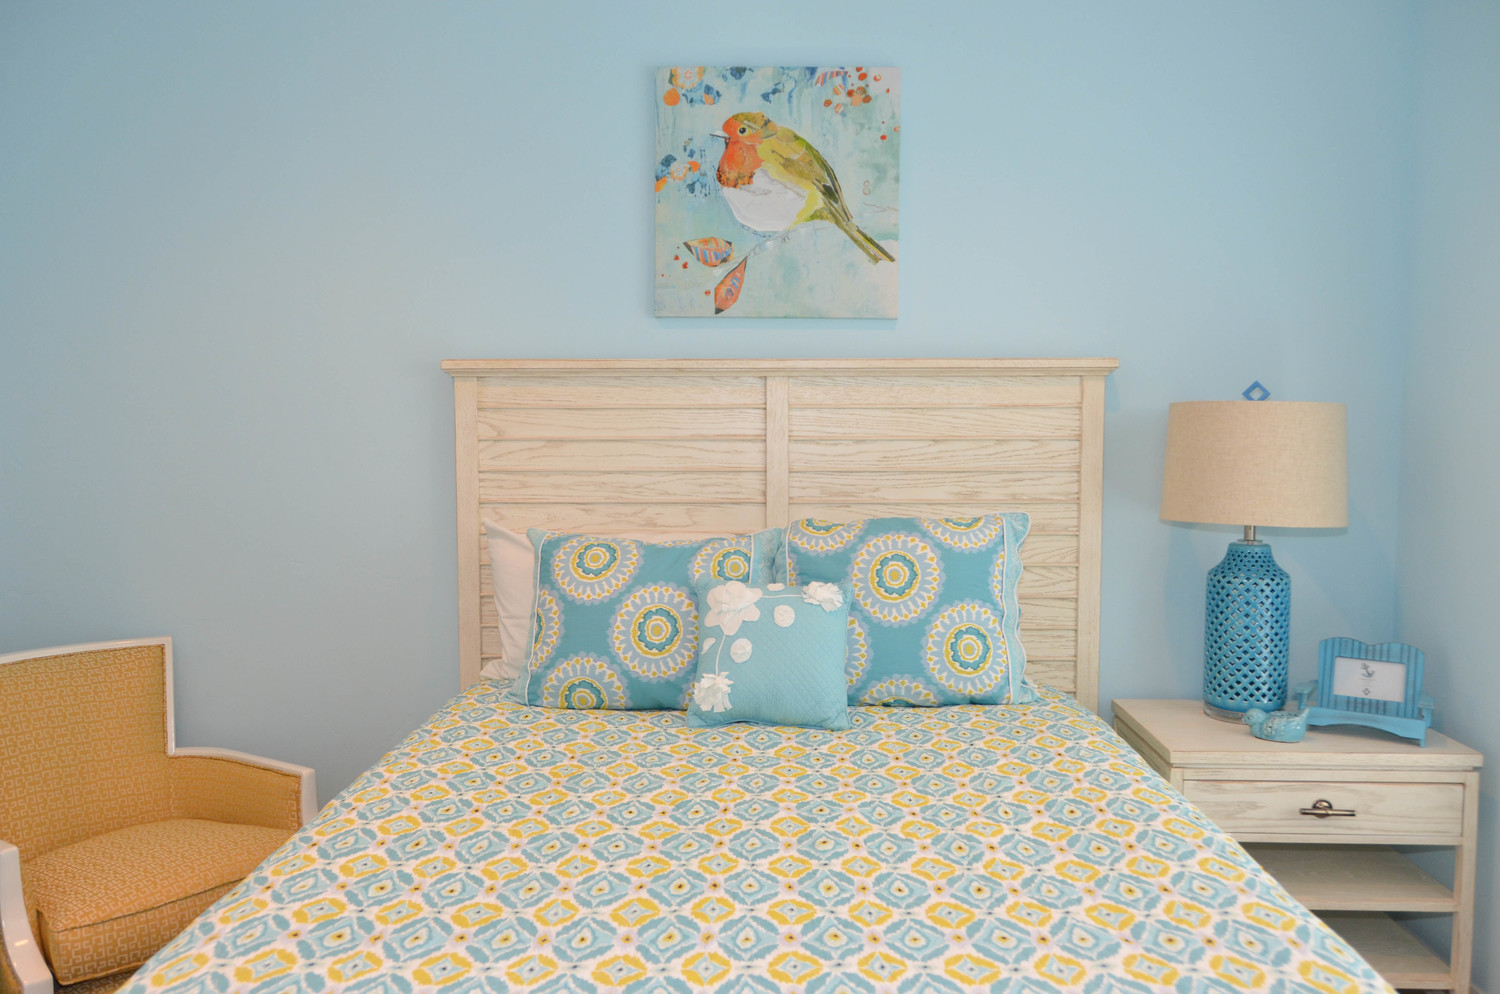 Yellow and blue bedroom with a whimsical bird art.